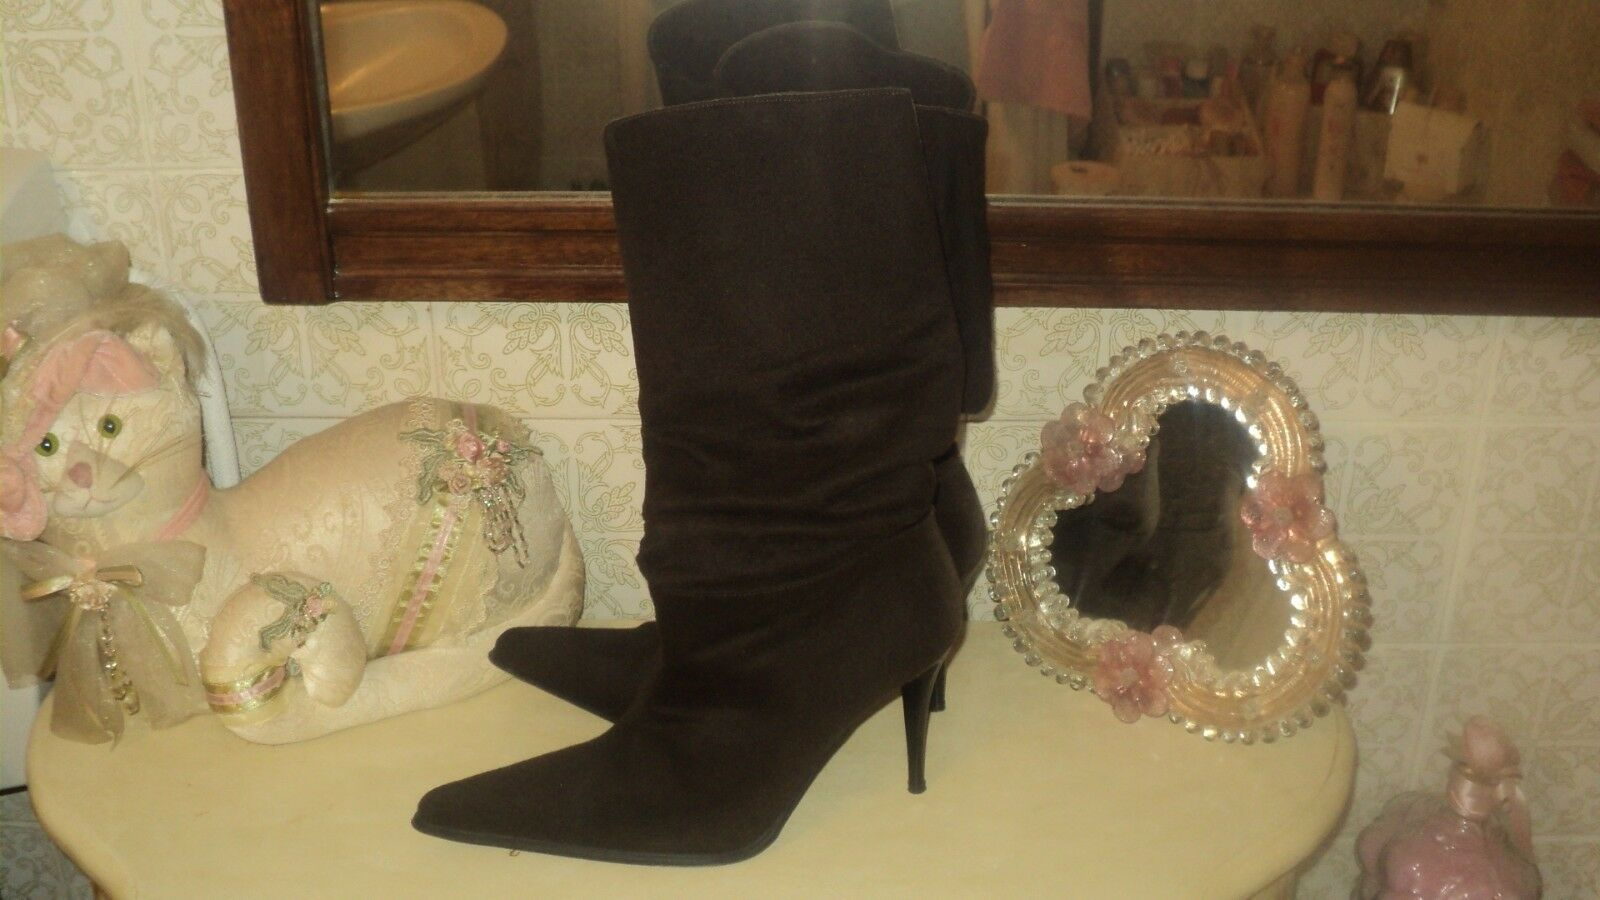 ITALIAN JL BROWN SUEDE POINTED BOOTS PLEATED BOOTS POINTED STILETTO HEELS EU38*UK5*US7,5 207841